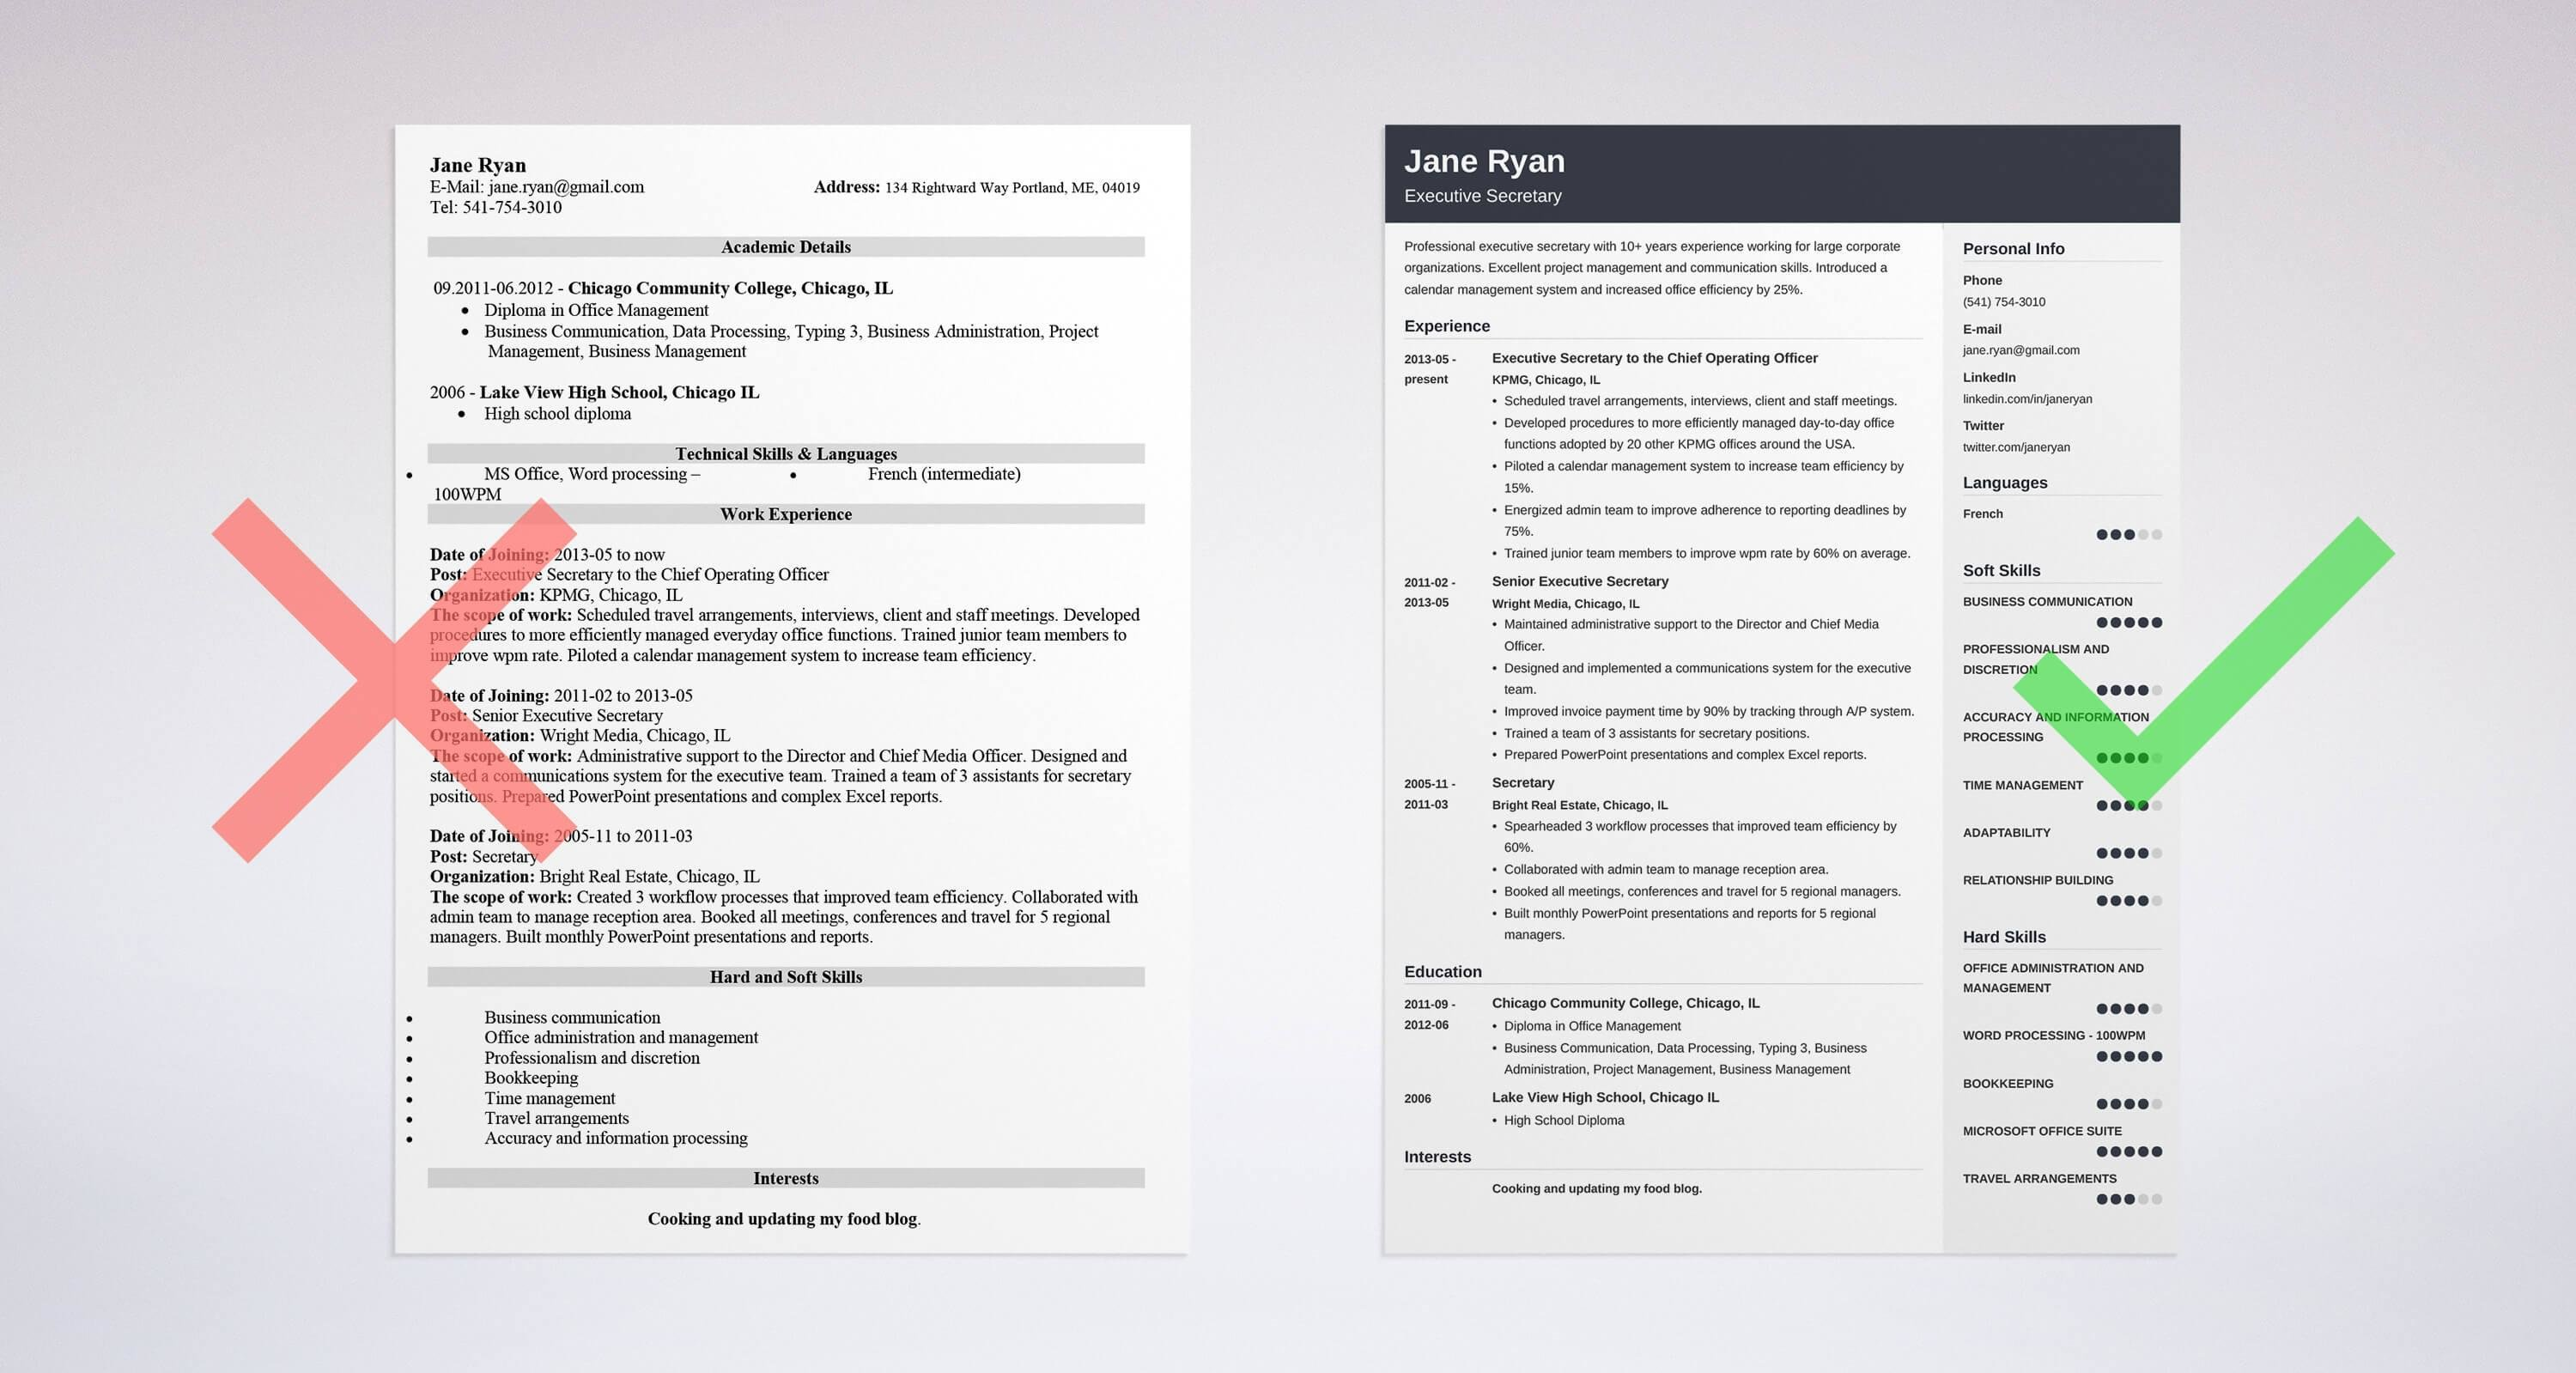 Hints For A Good Resume Pretty Hints For A Good Resume Images Resume Hints And